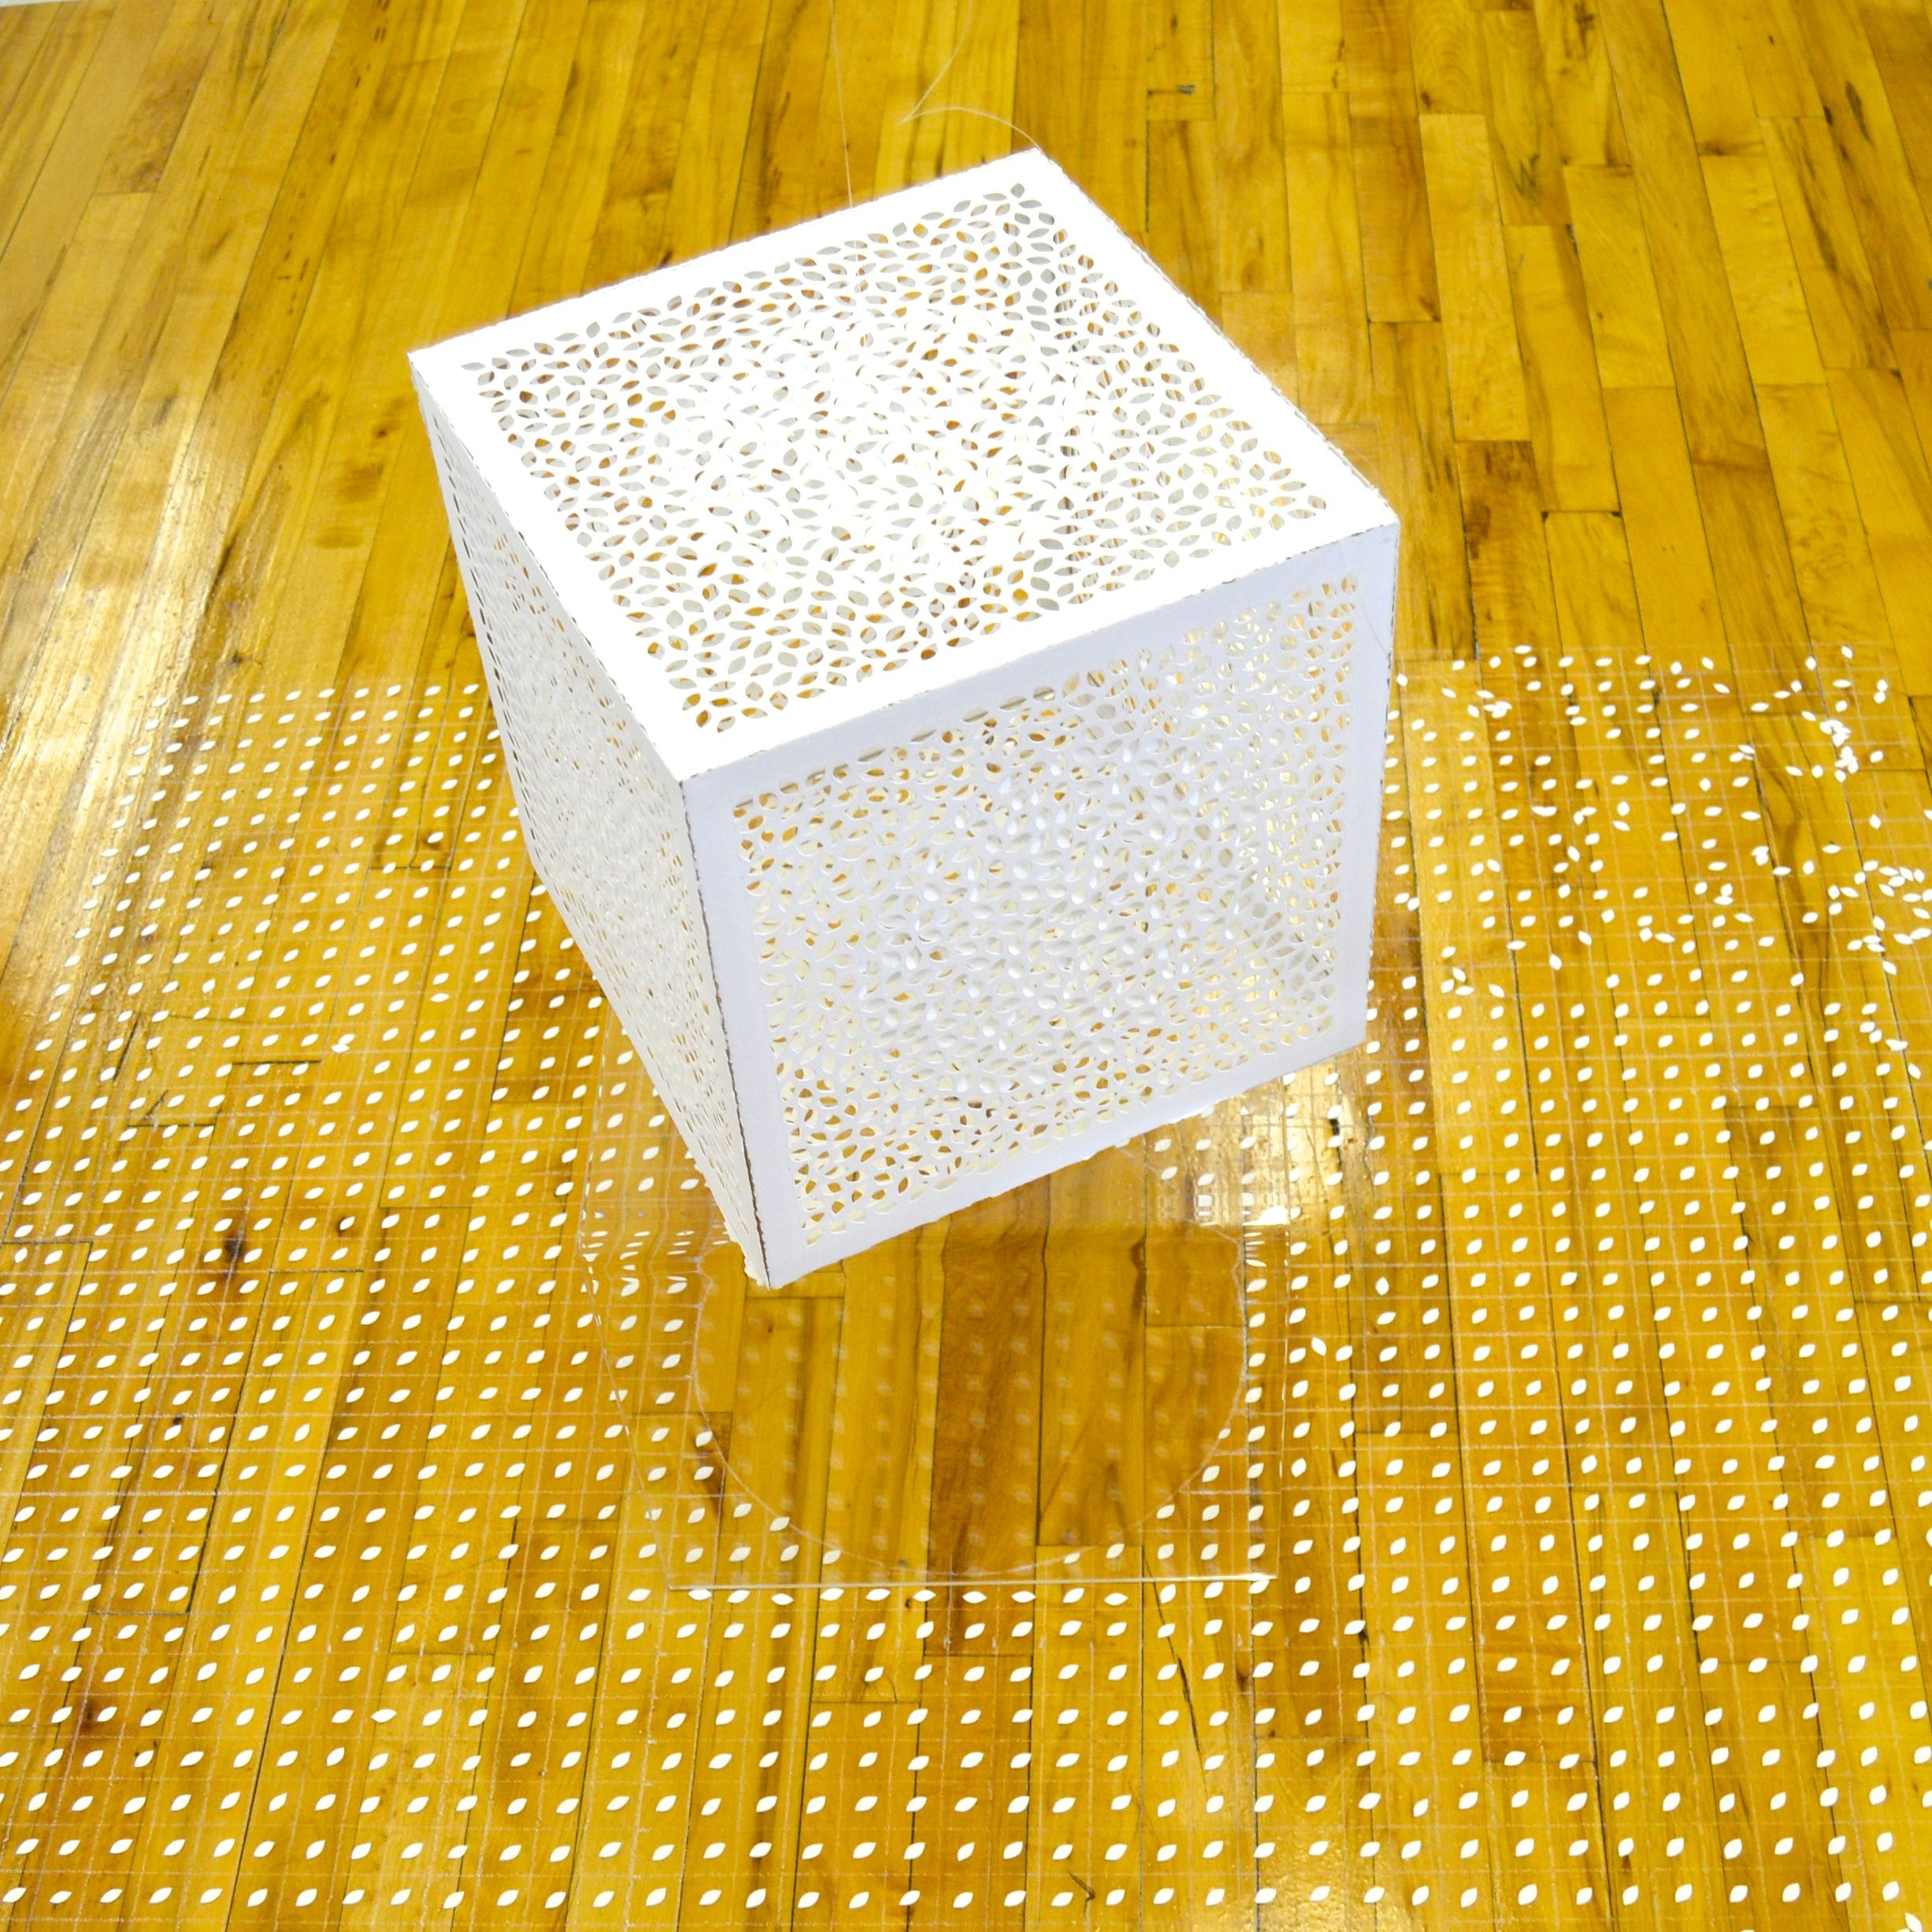 This 'floating' cube interplays with the cut-out pieces carefully placed below.